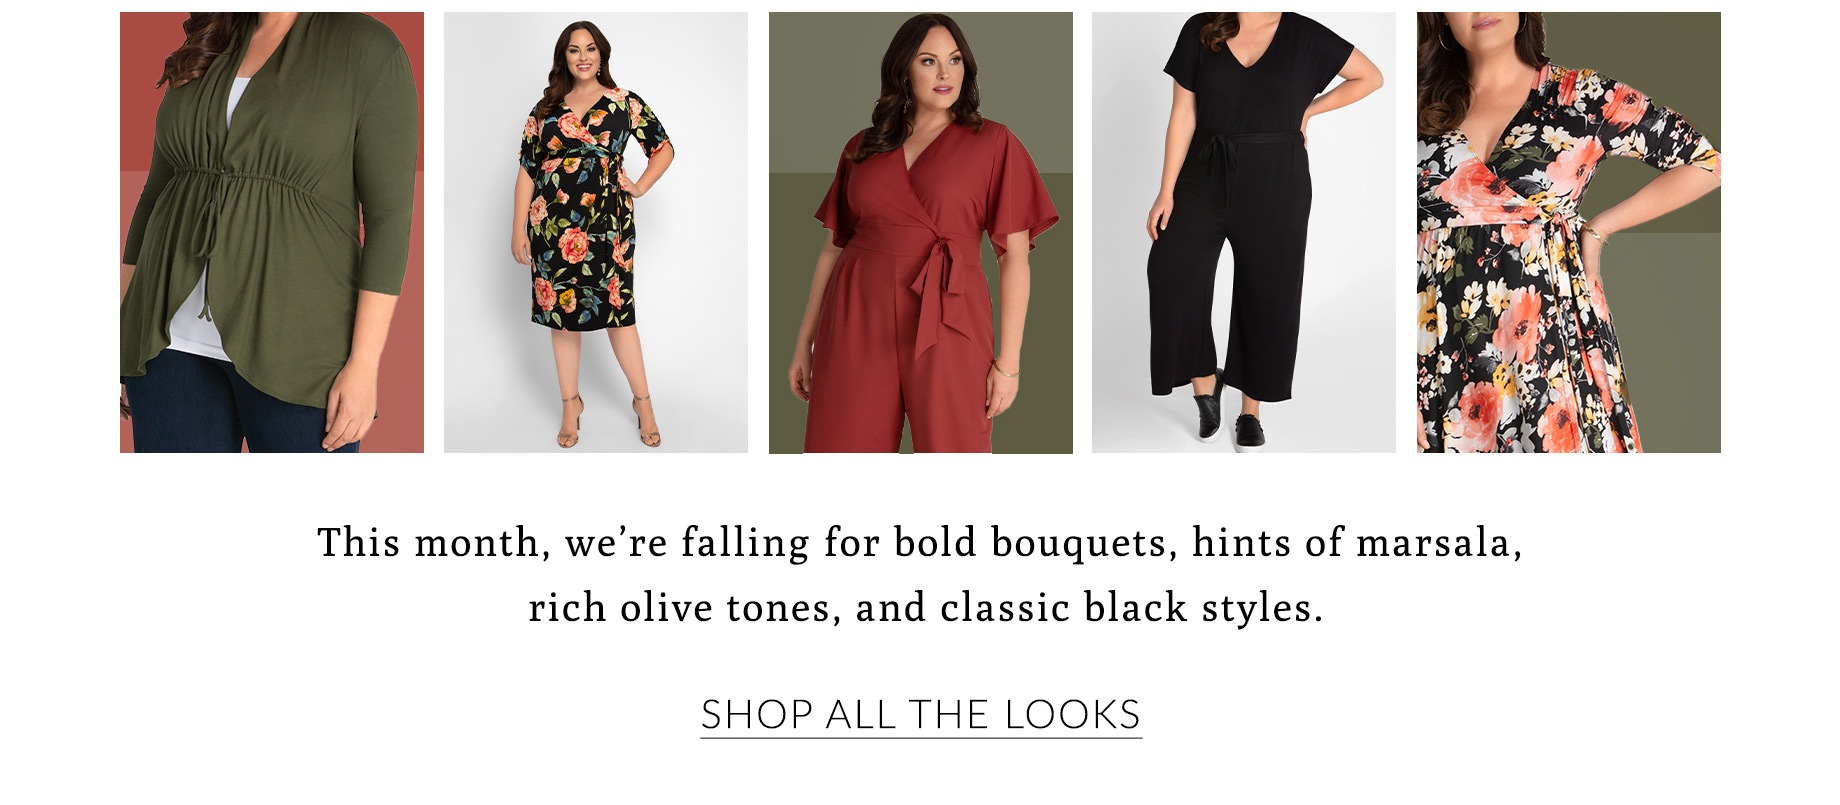 Shop All the Looks